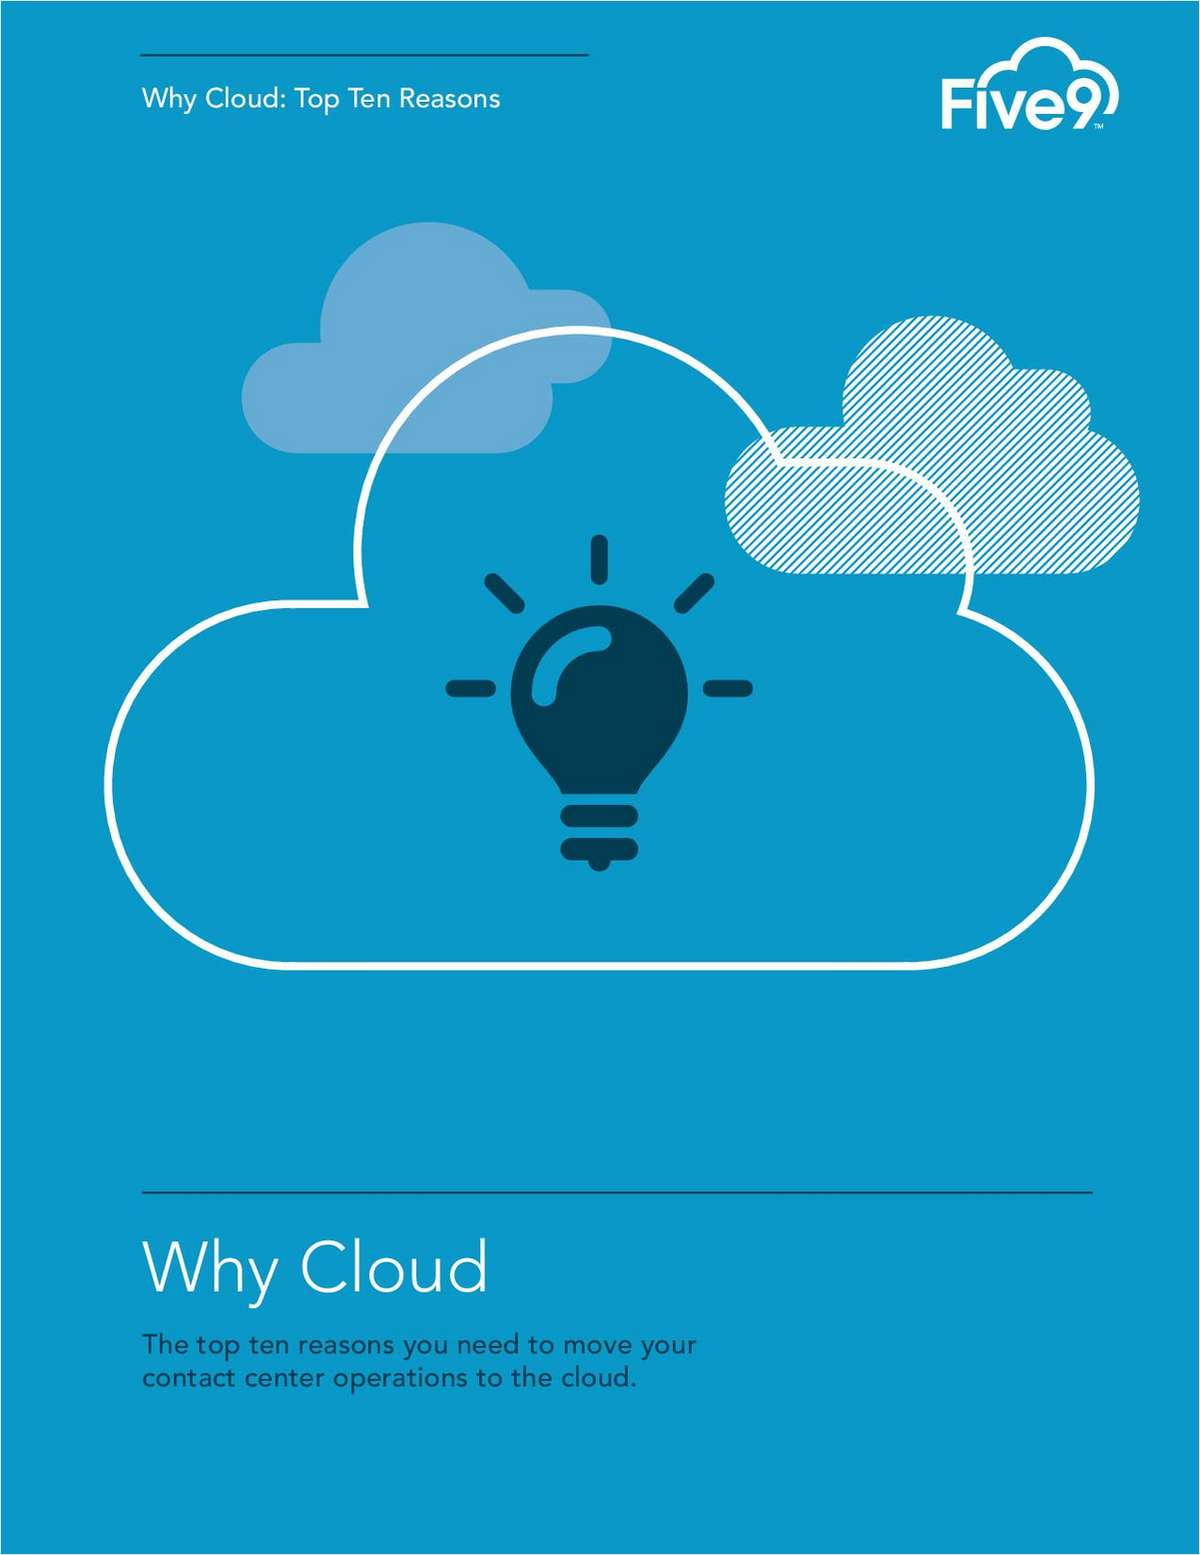 Top Ten Reasons to Move Your Contact Center Operations to the Cloud